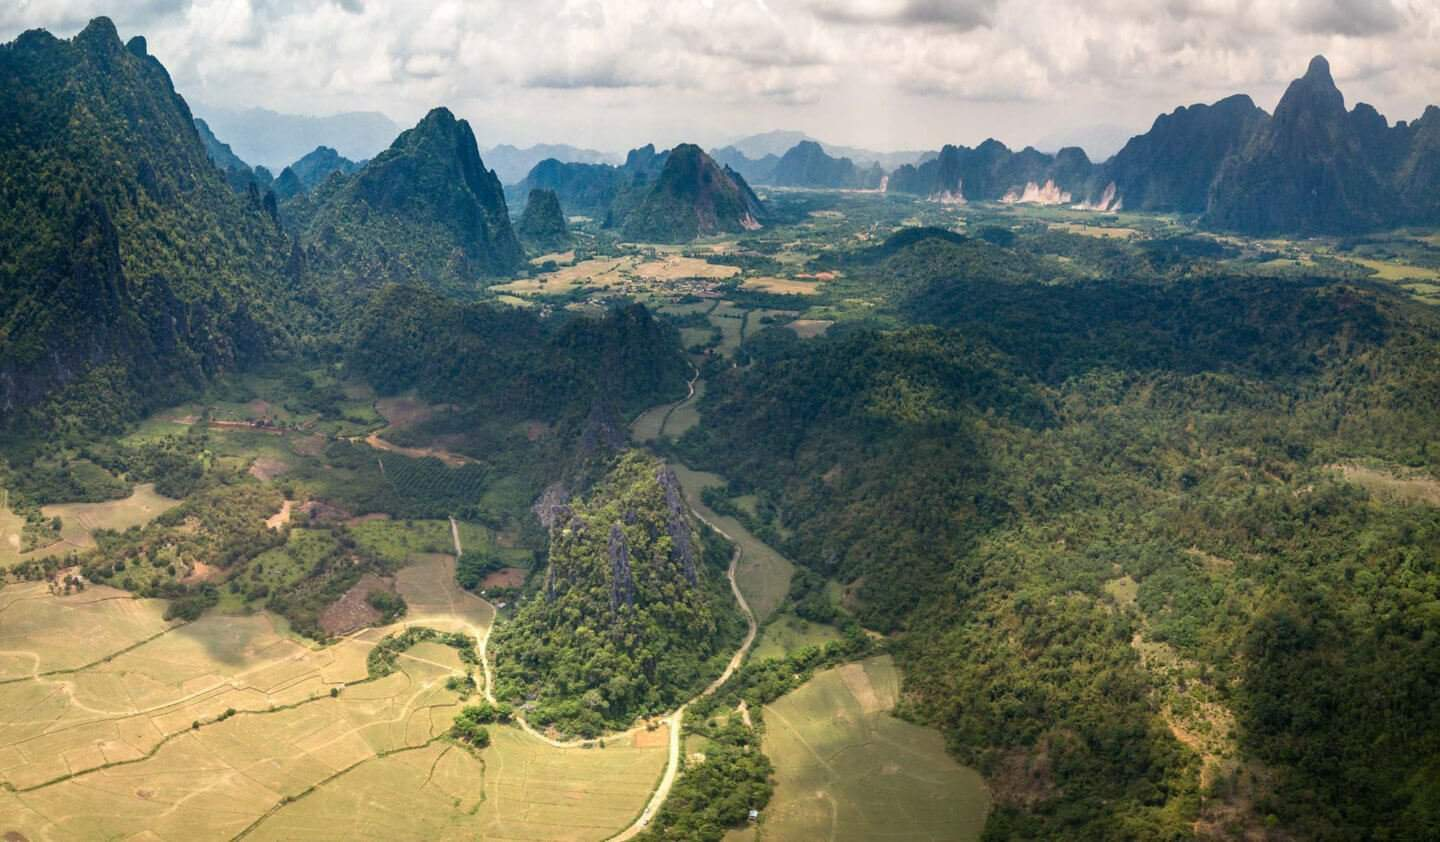 A drone photo from Vang Vieng capturing the dramatic mountains and landscape of northern Laos